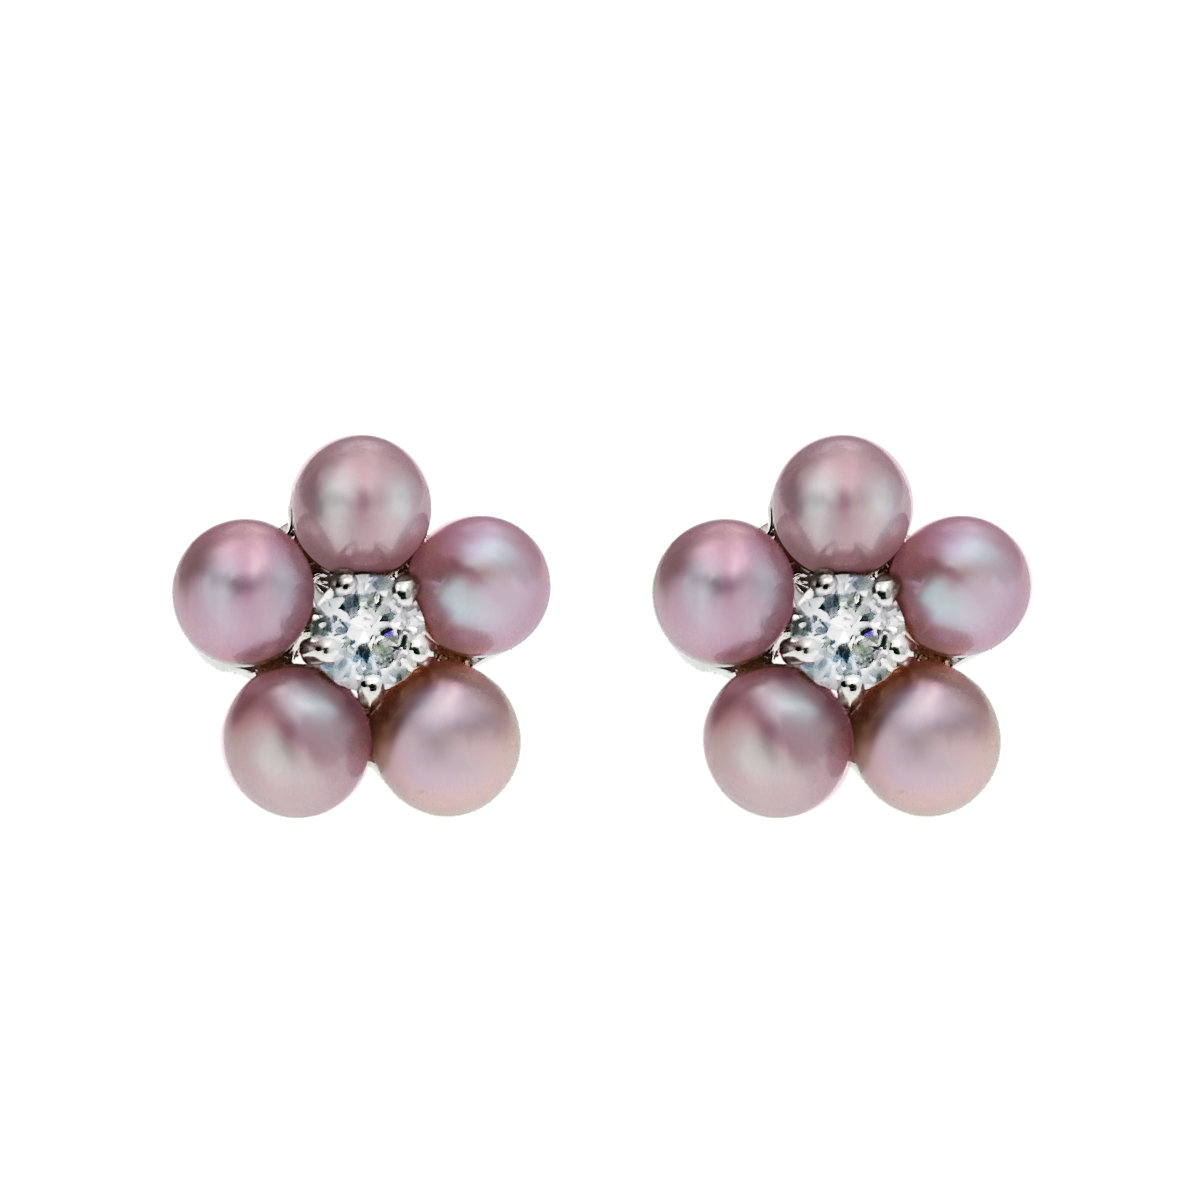 Hana- Cultured Fresh Water Pearl with cz mounted 925 Silver Earring